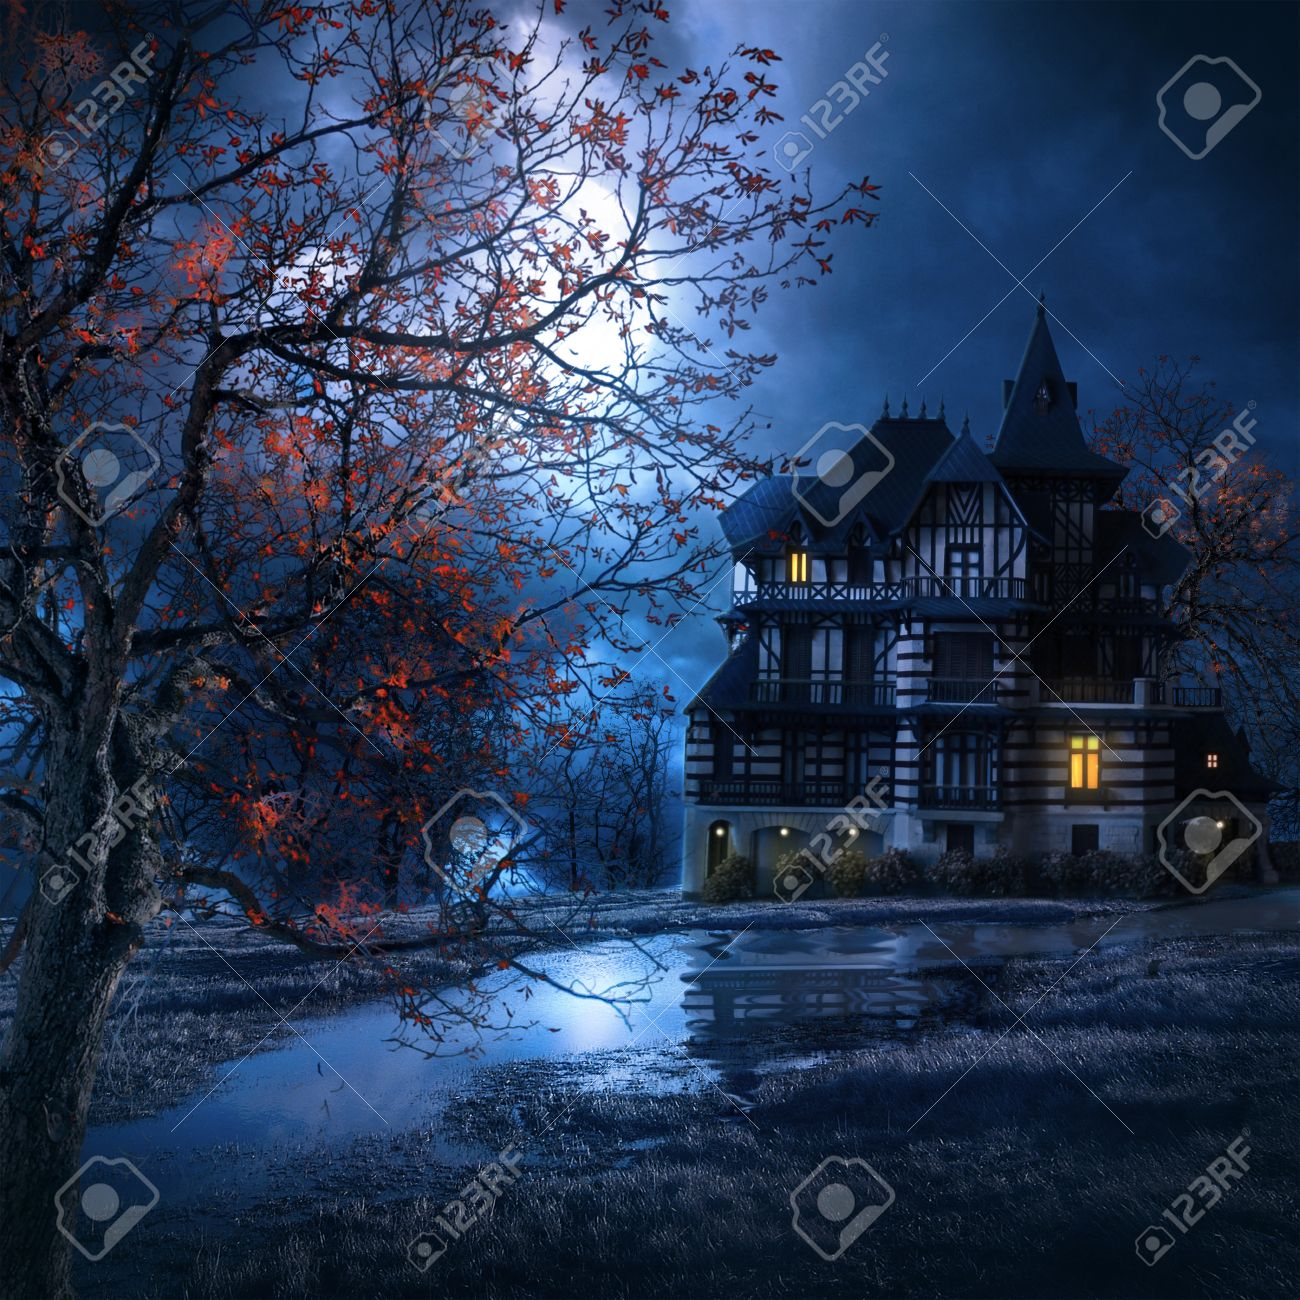 mysterious house in the night with the moon illuminating the scenery - 34935868